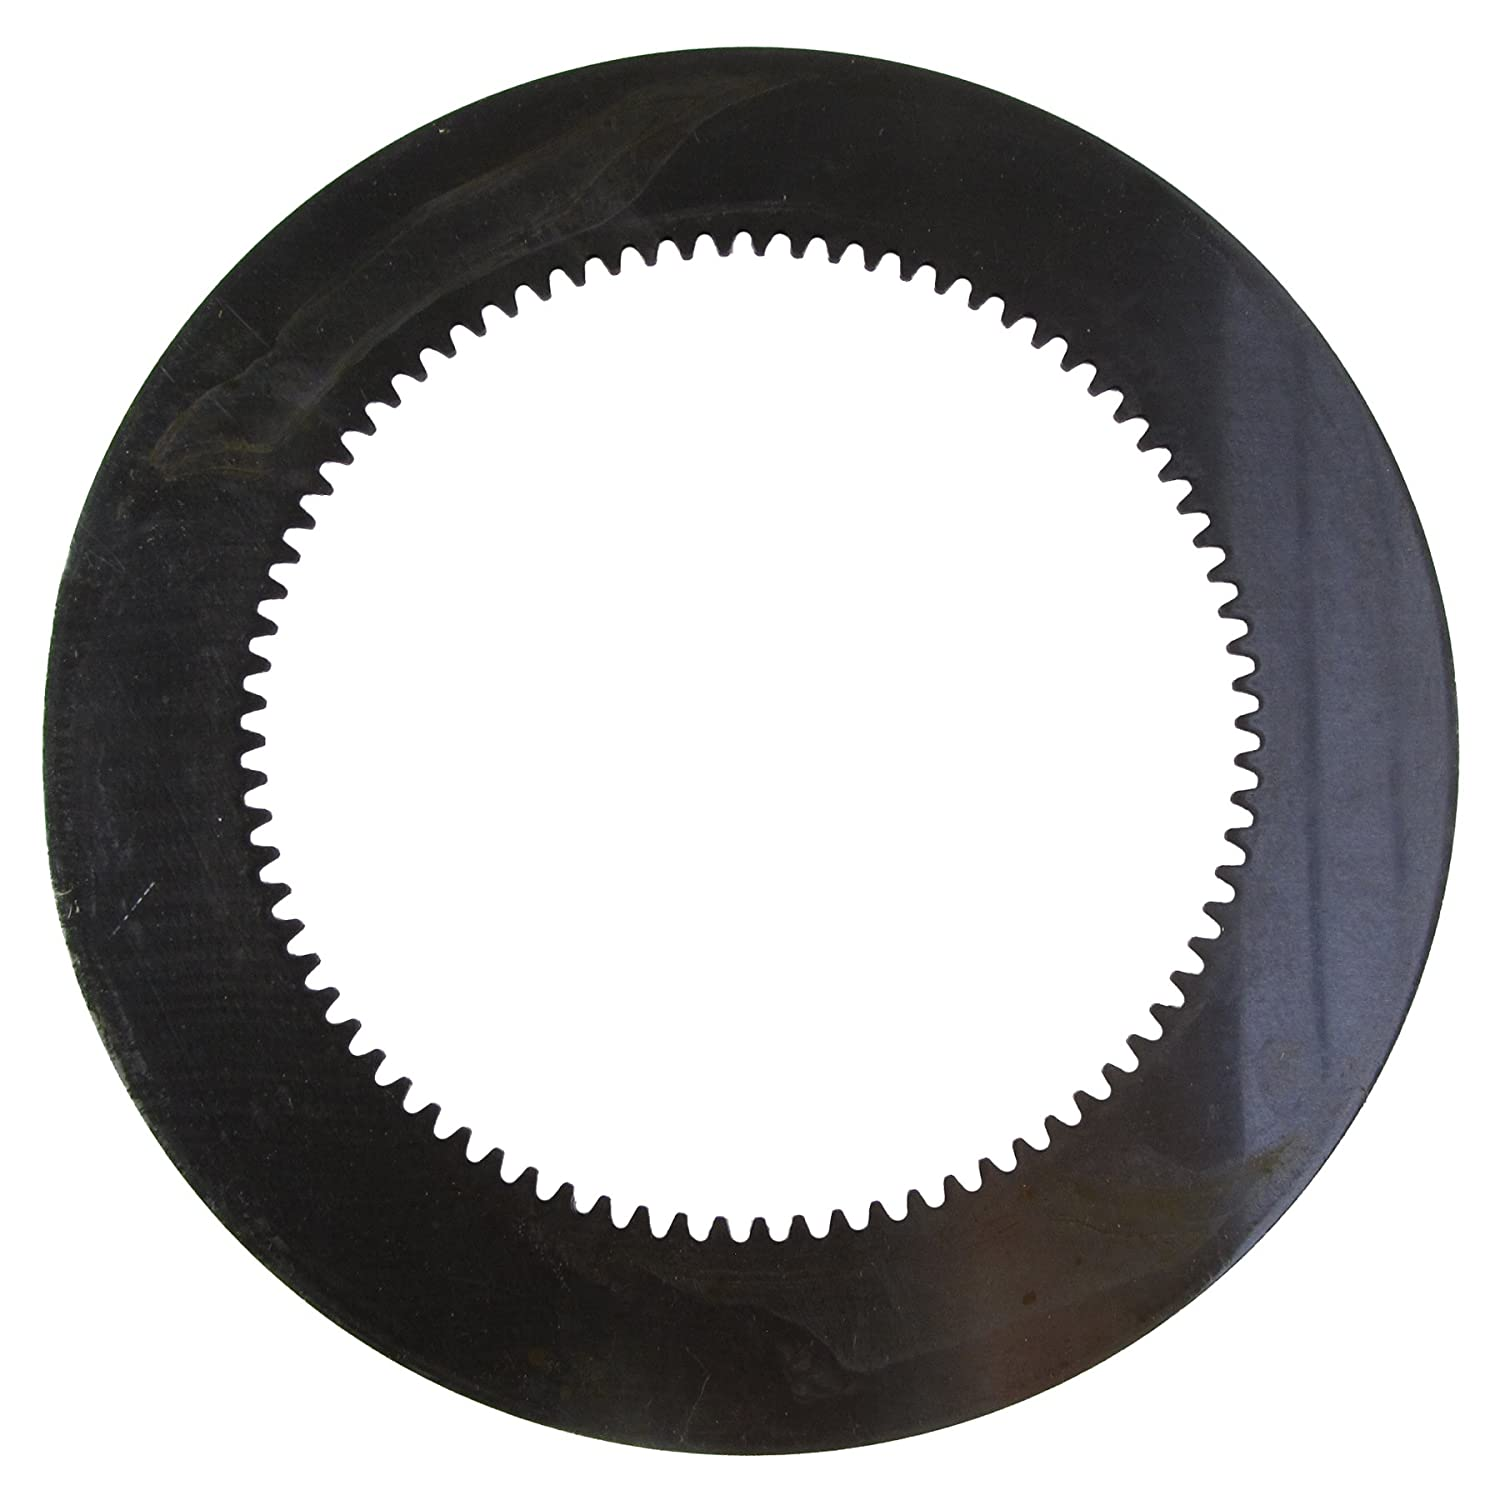 Steel Clutch Komatsu 130-22-11320 Cheap mail order sales Replaced 325713-260 # by Alto Superior